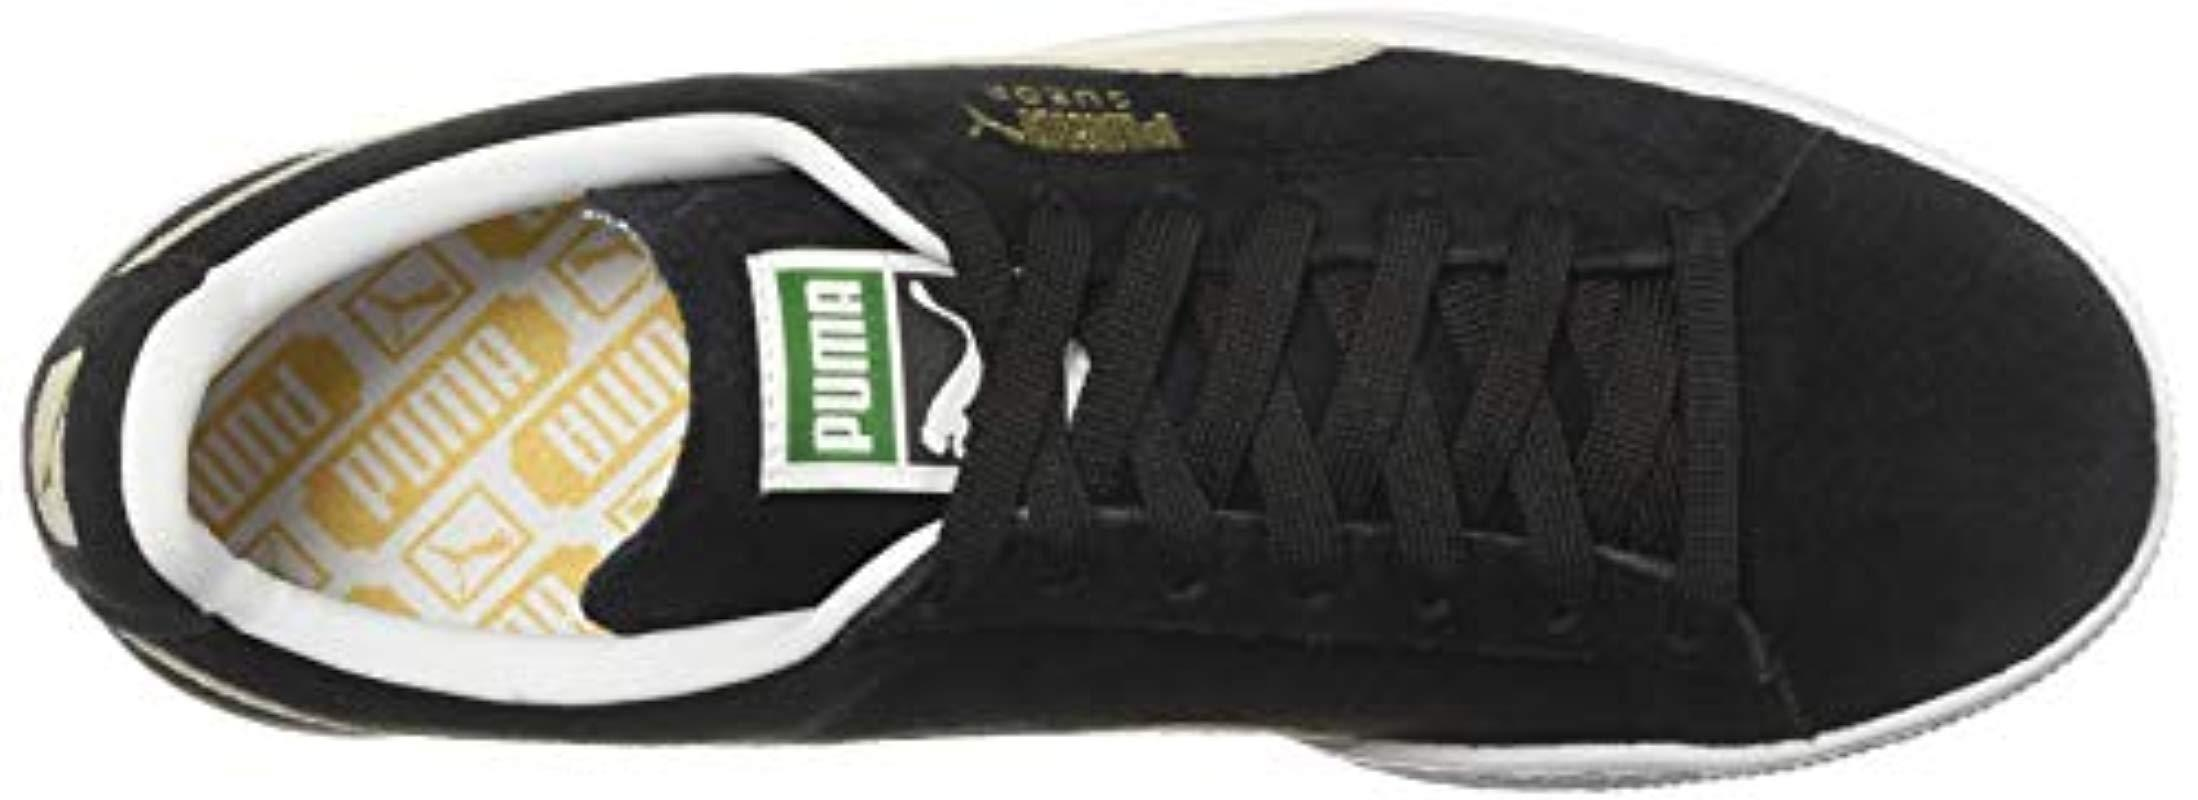 newest 1c8f0 3226e PUMA Suede Classic+ 352634, Unisex Adults Low-top Trainers ...